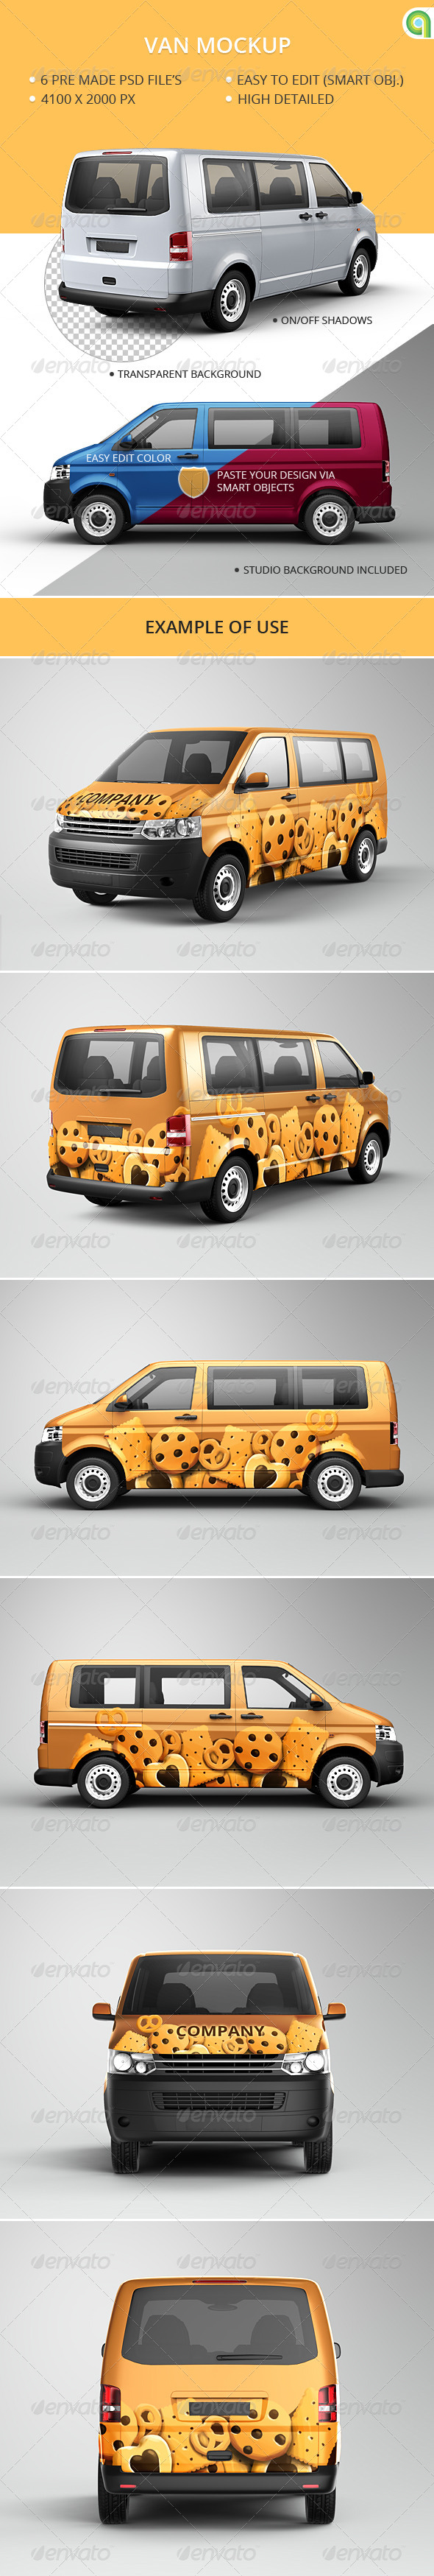 Vehicle Graphics, Designs & Templates from GraphicRiver